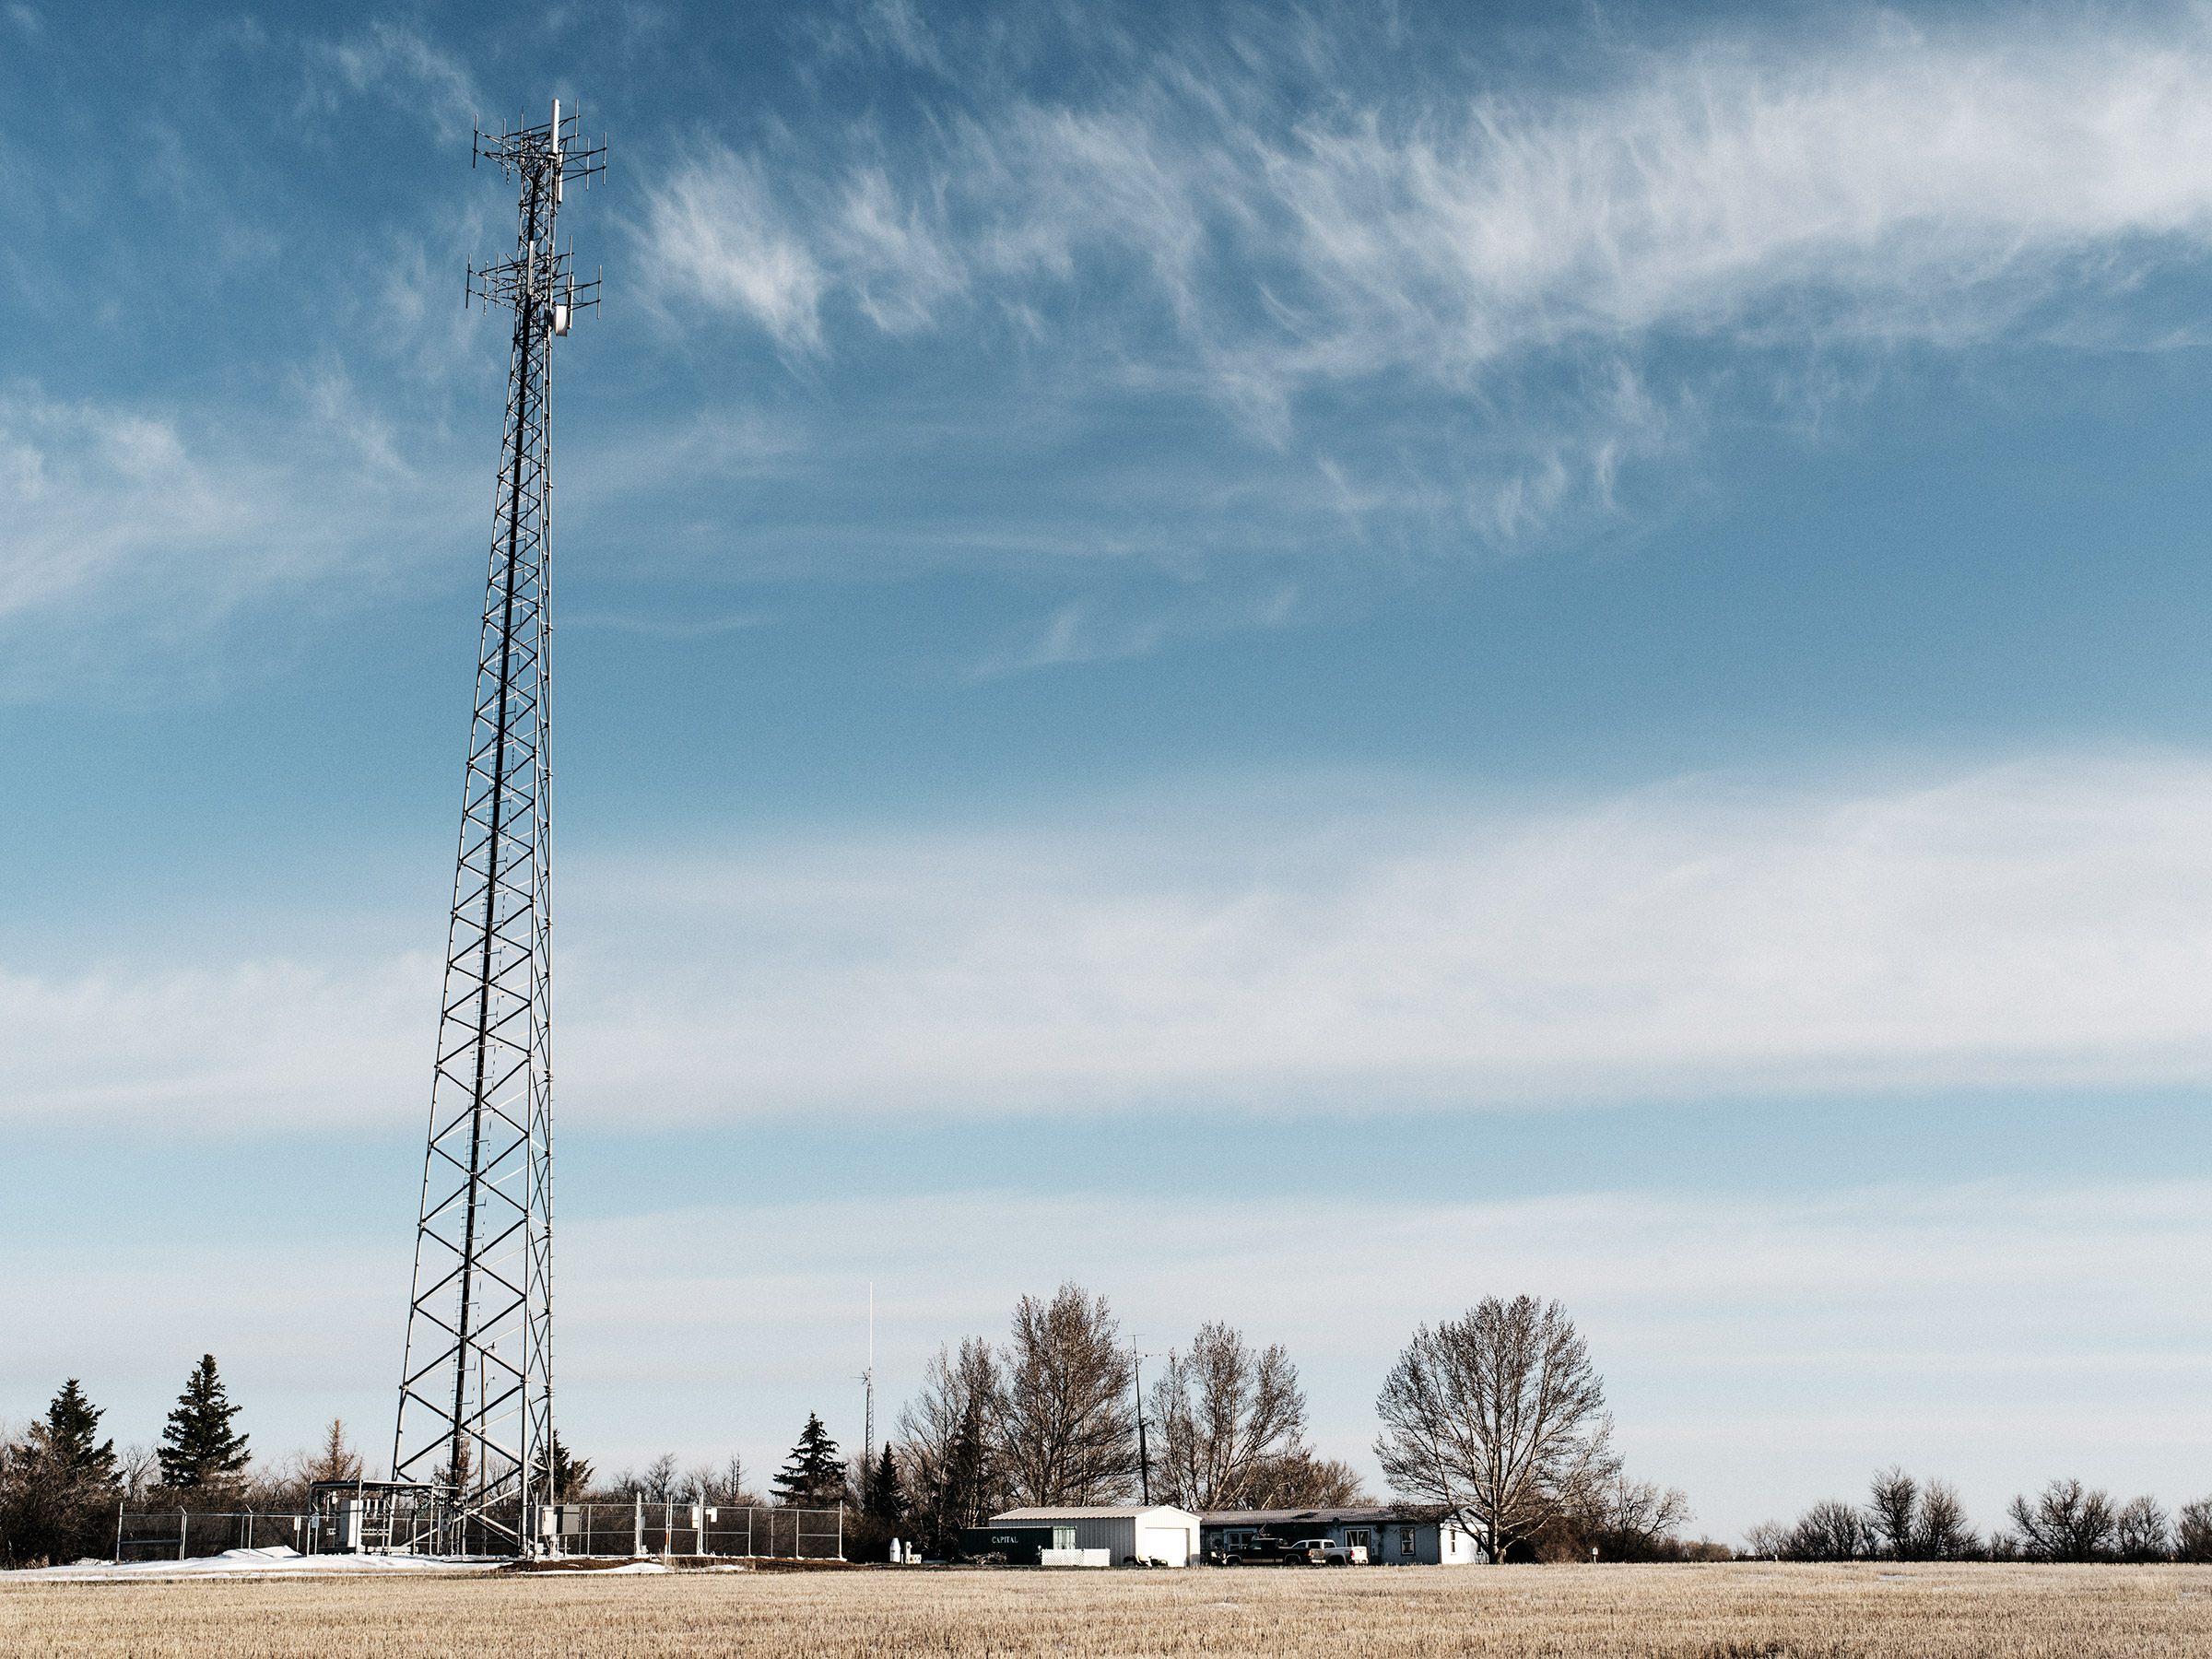 The tower built by Nemont in Honrud's yard in rural Montana. The remote property relies on Huawei technology for all its cell service